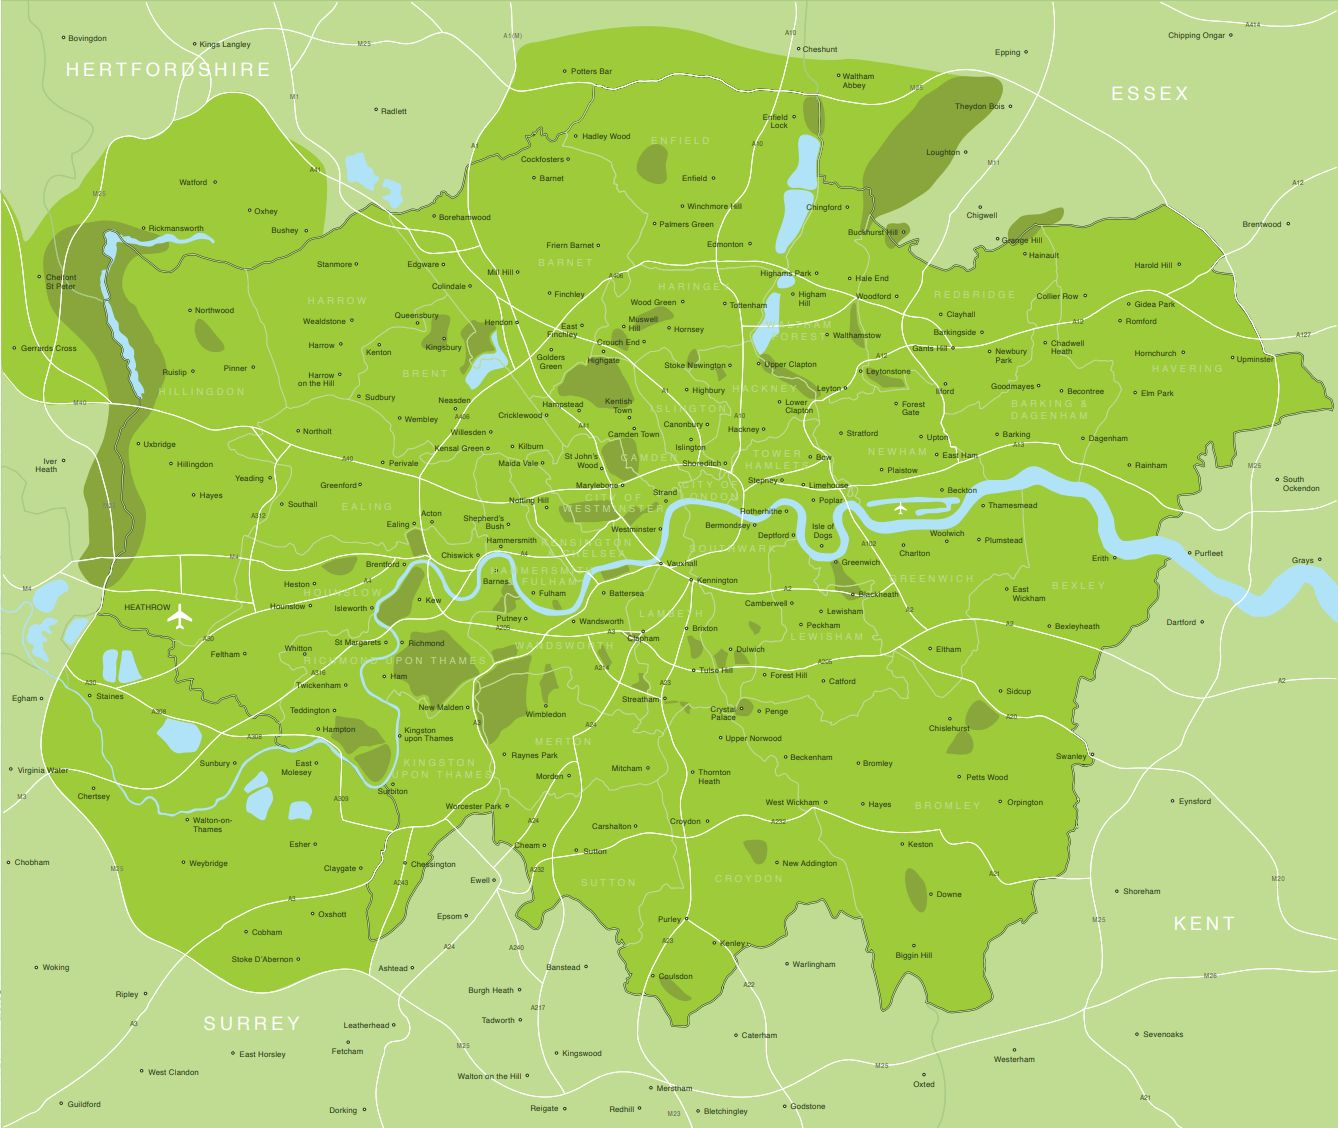 Postcode areas of Greater London where Love Yourself delivers